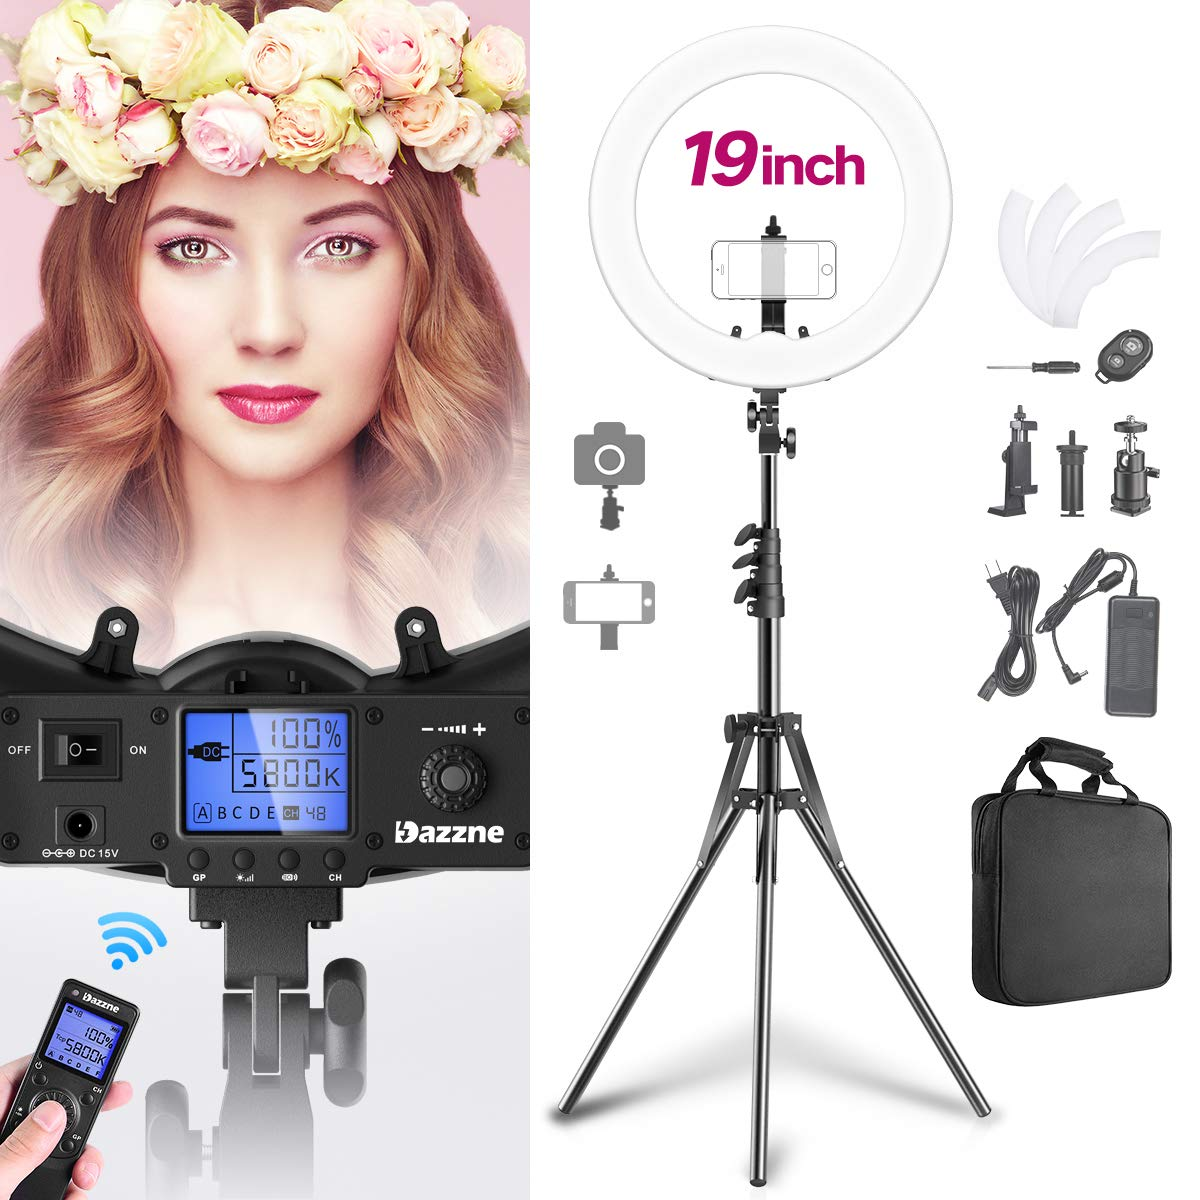 Remote Control 19'' Ring Light with Stand Camera Smartphone Holder Kit 55w 4800Lux 3000K-5800K Dimmable 1%-100% for YouTube Video Shooting Twitch Live Stream Beauty Makeup Selfie Photography Lighting